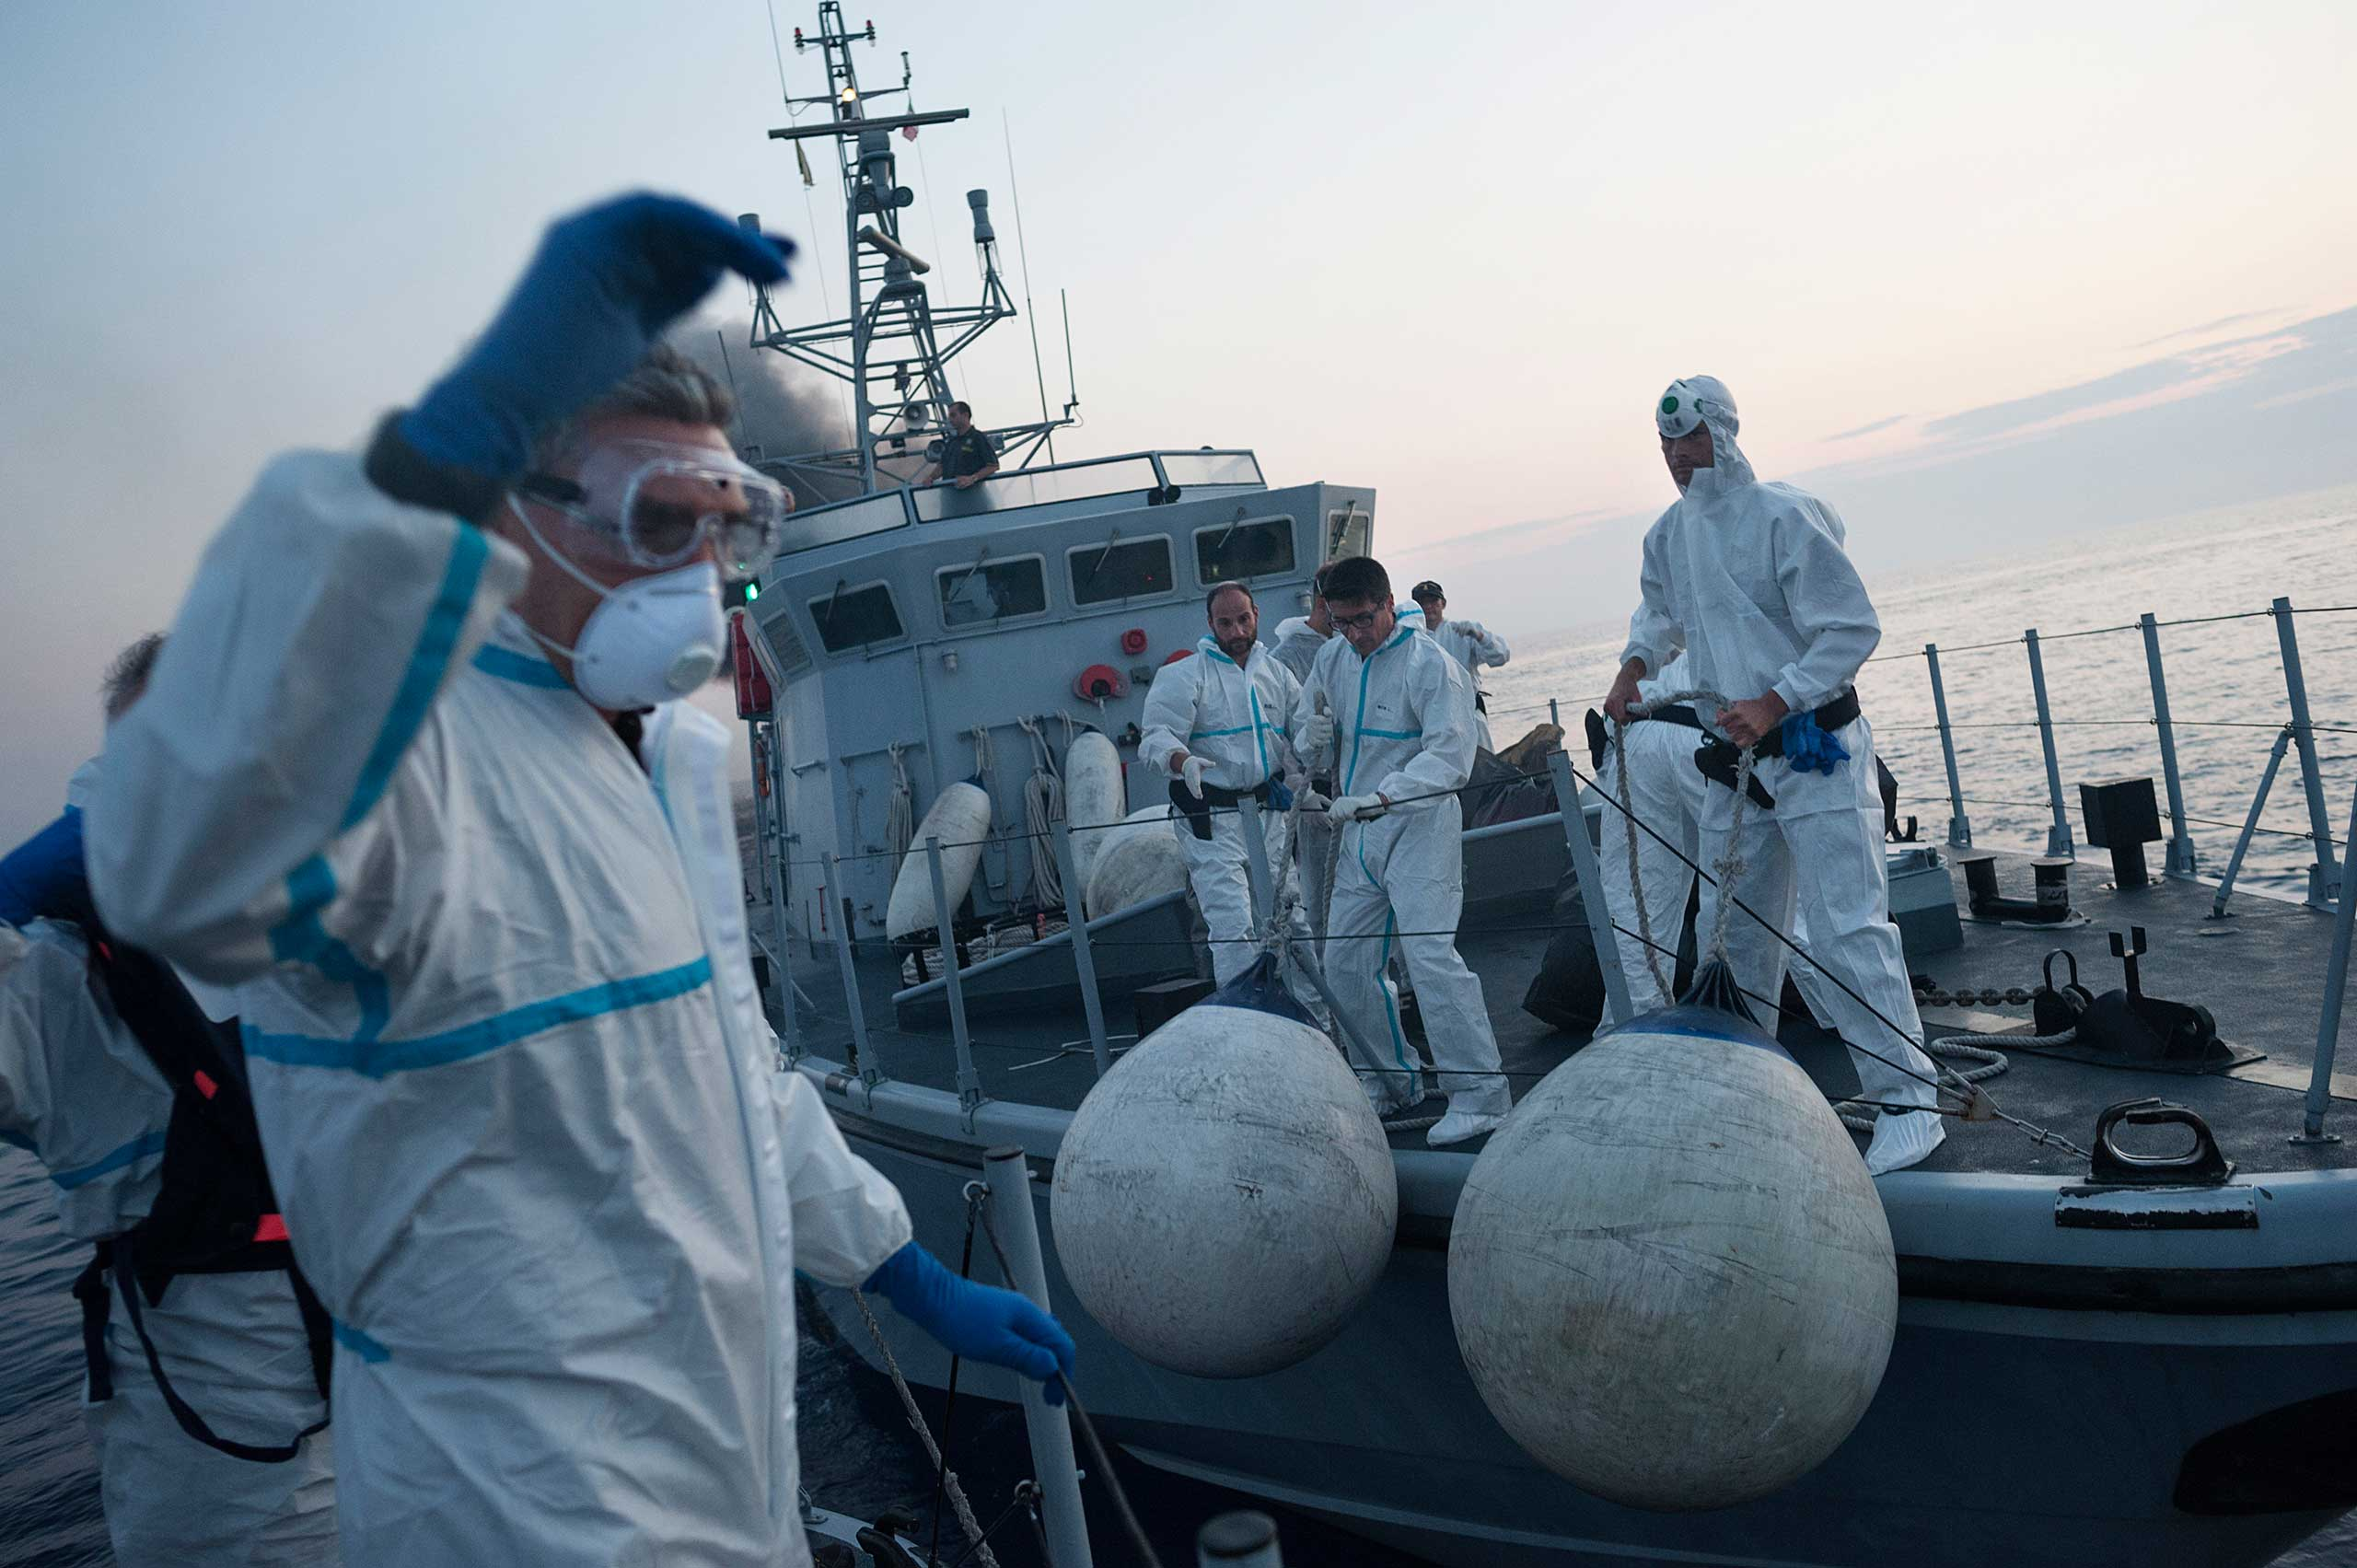 Italian authorities are seen during an operation some 120 miles off the Italian coast that rescued more than 100 migrants coming from Libya on June 6, 2015.